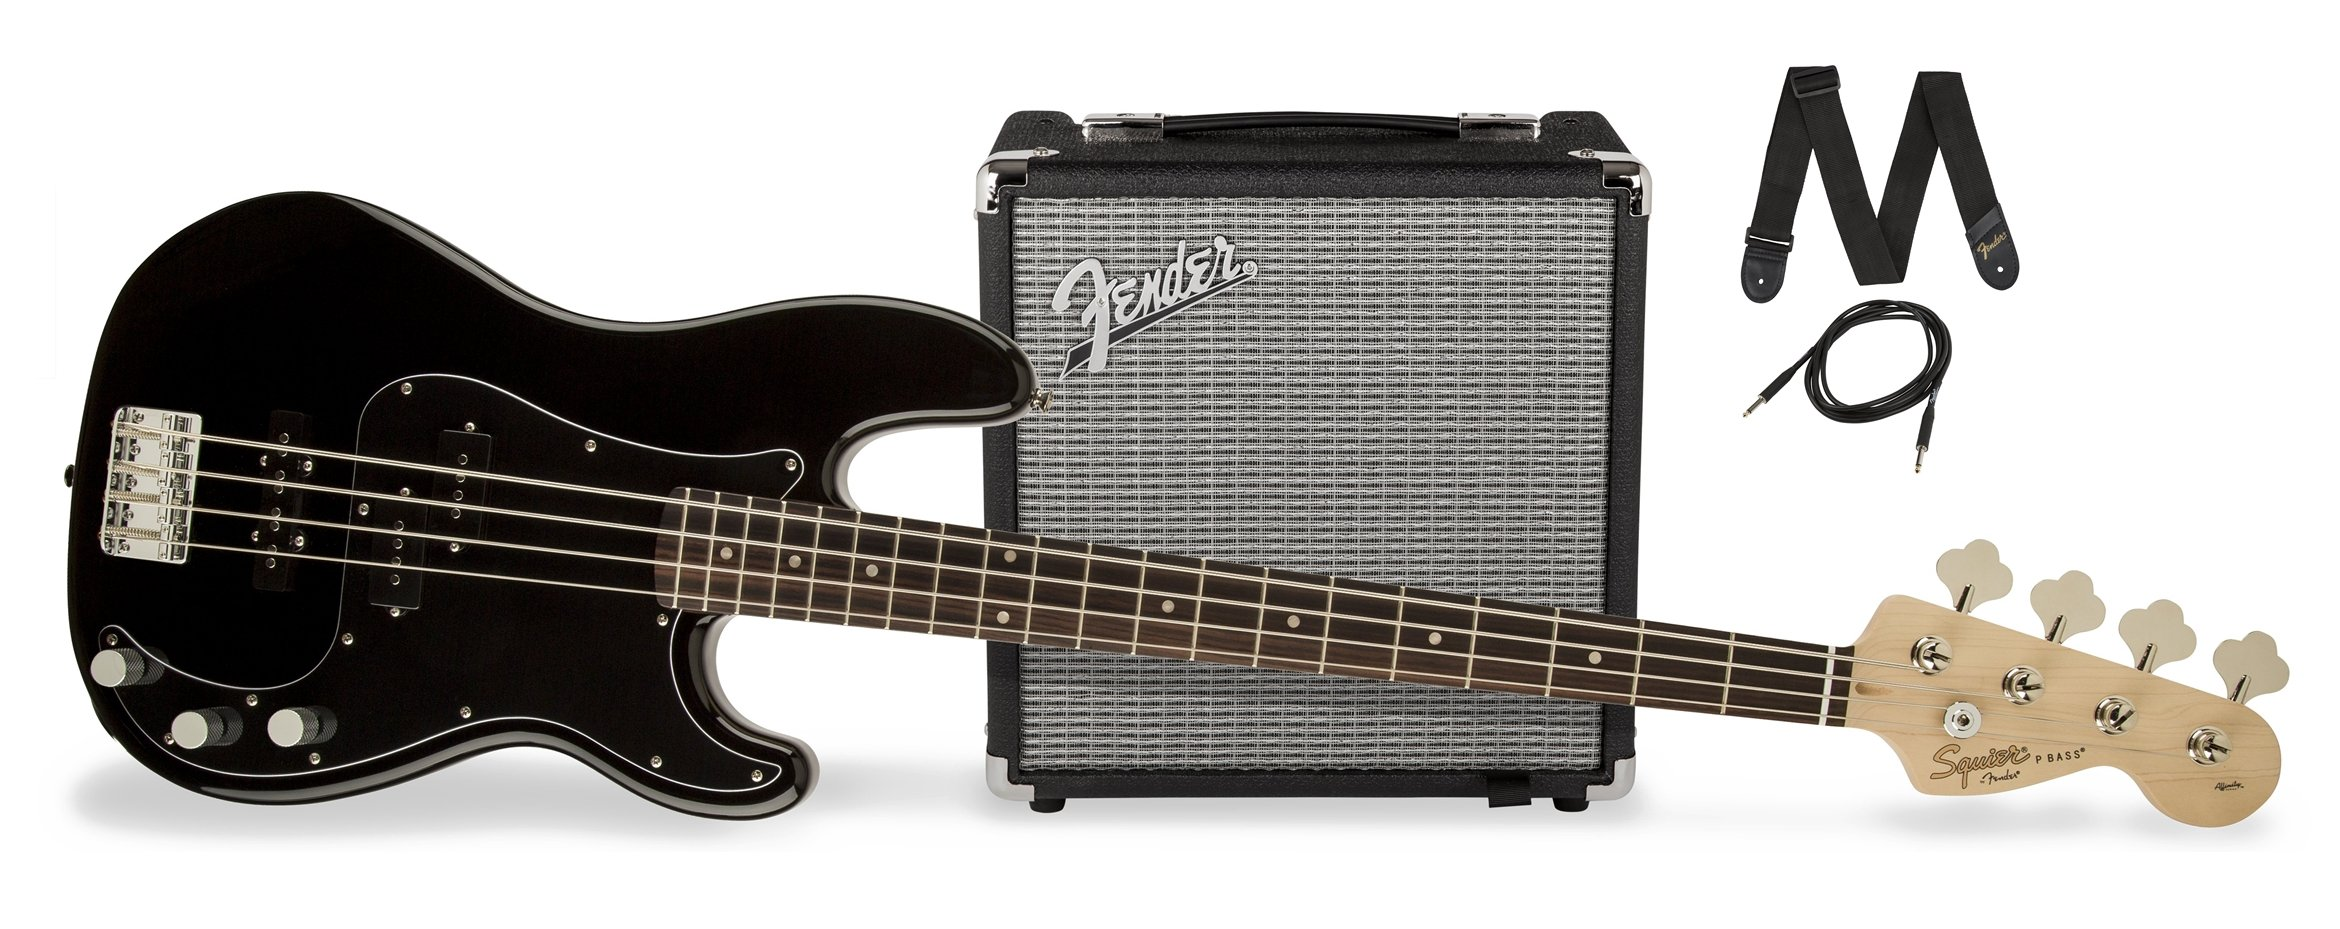 Squier by Fender PJ Electric Bass Guitar Beginner Pack with Rumble 15 Amplifier - Black Finish by Fender